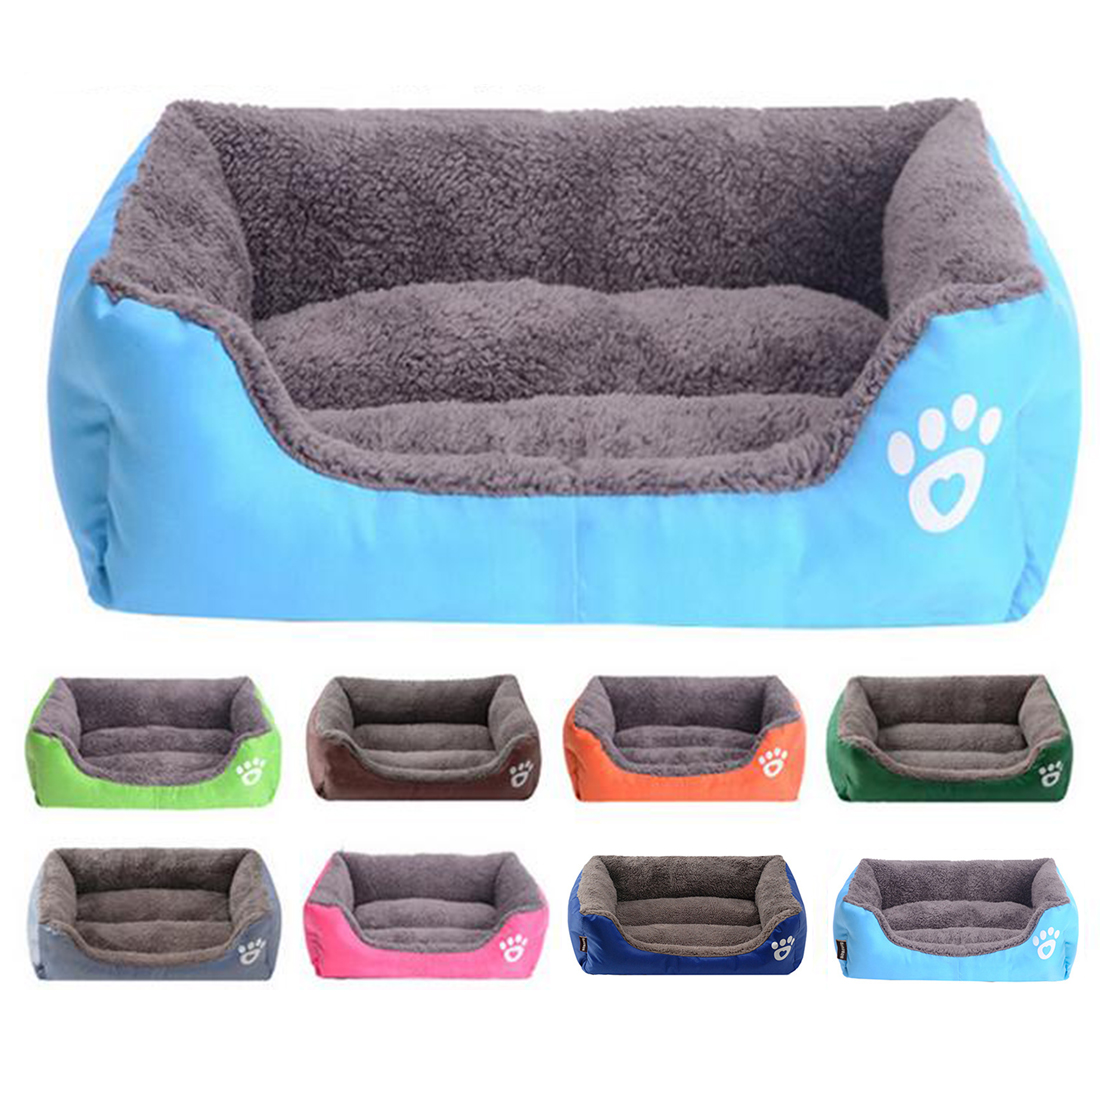 BIG Warming Dog House Soft Material Nest Dog Baskets Fall and Winter Warm Kennel For Cat Puppy Bed For Dog Cat Pet Dog BedsBIG Warming Dog House Soft Material Nest Dog Baskets Fall and Winter Warm Kennel For Cat Puppy Bed For Dog Cat Pet Dog Beds